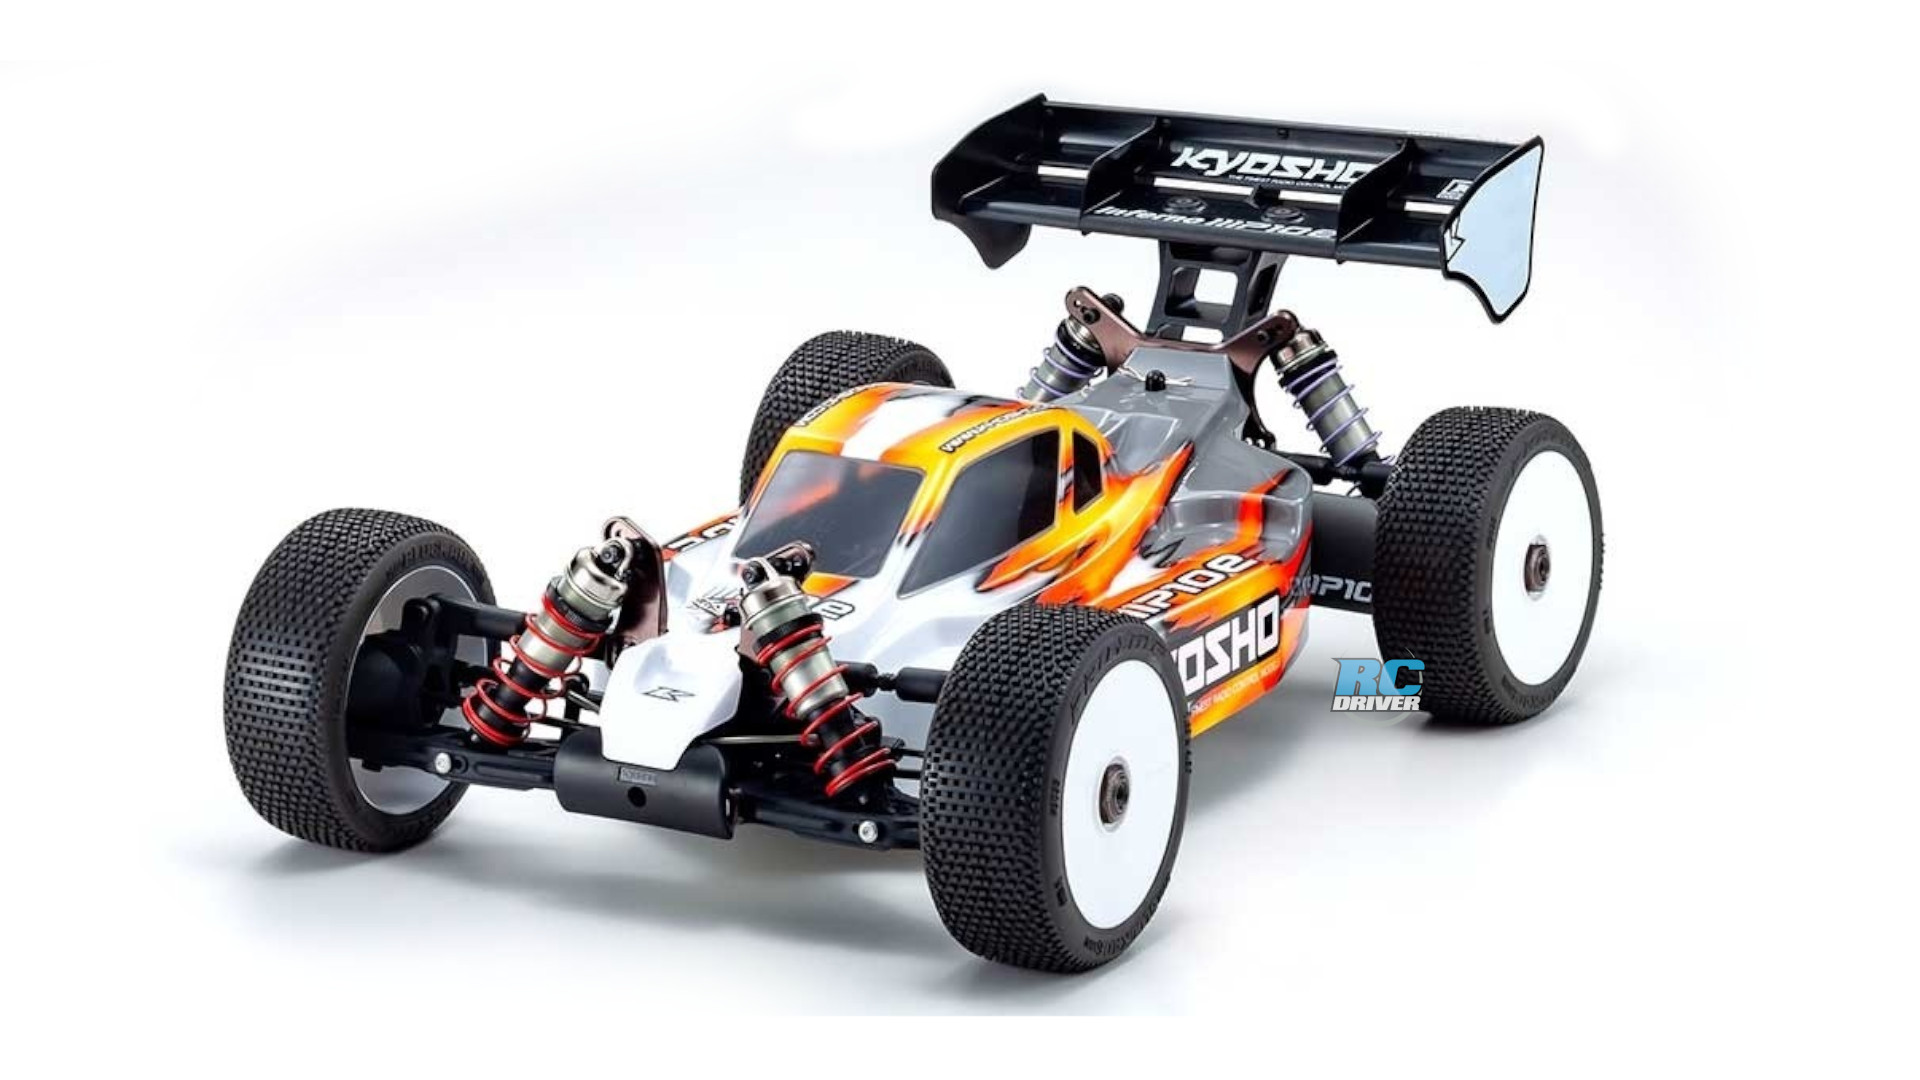 New Kyosho Inferno MP10e 1/8-scale electric buggy